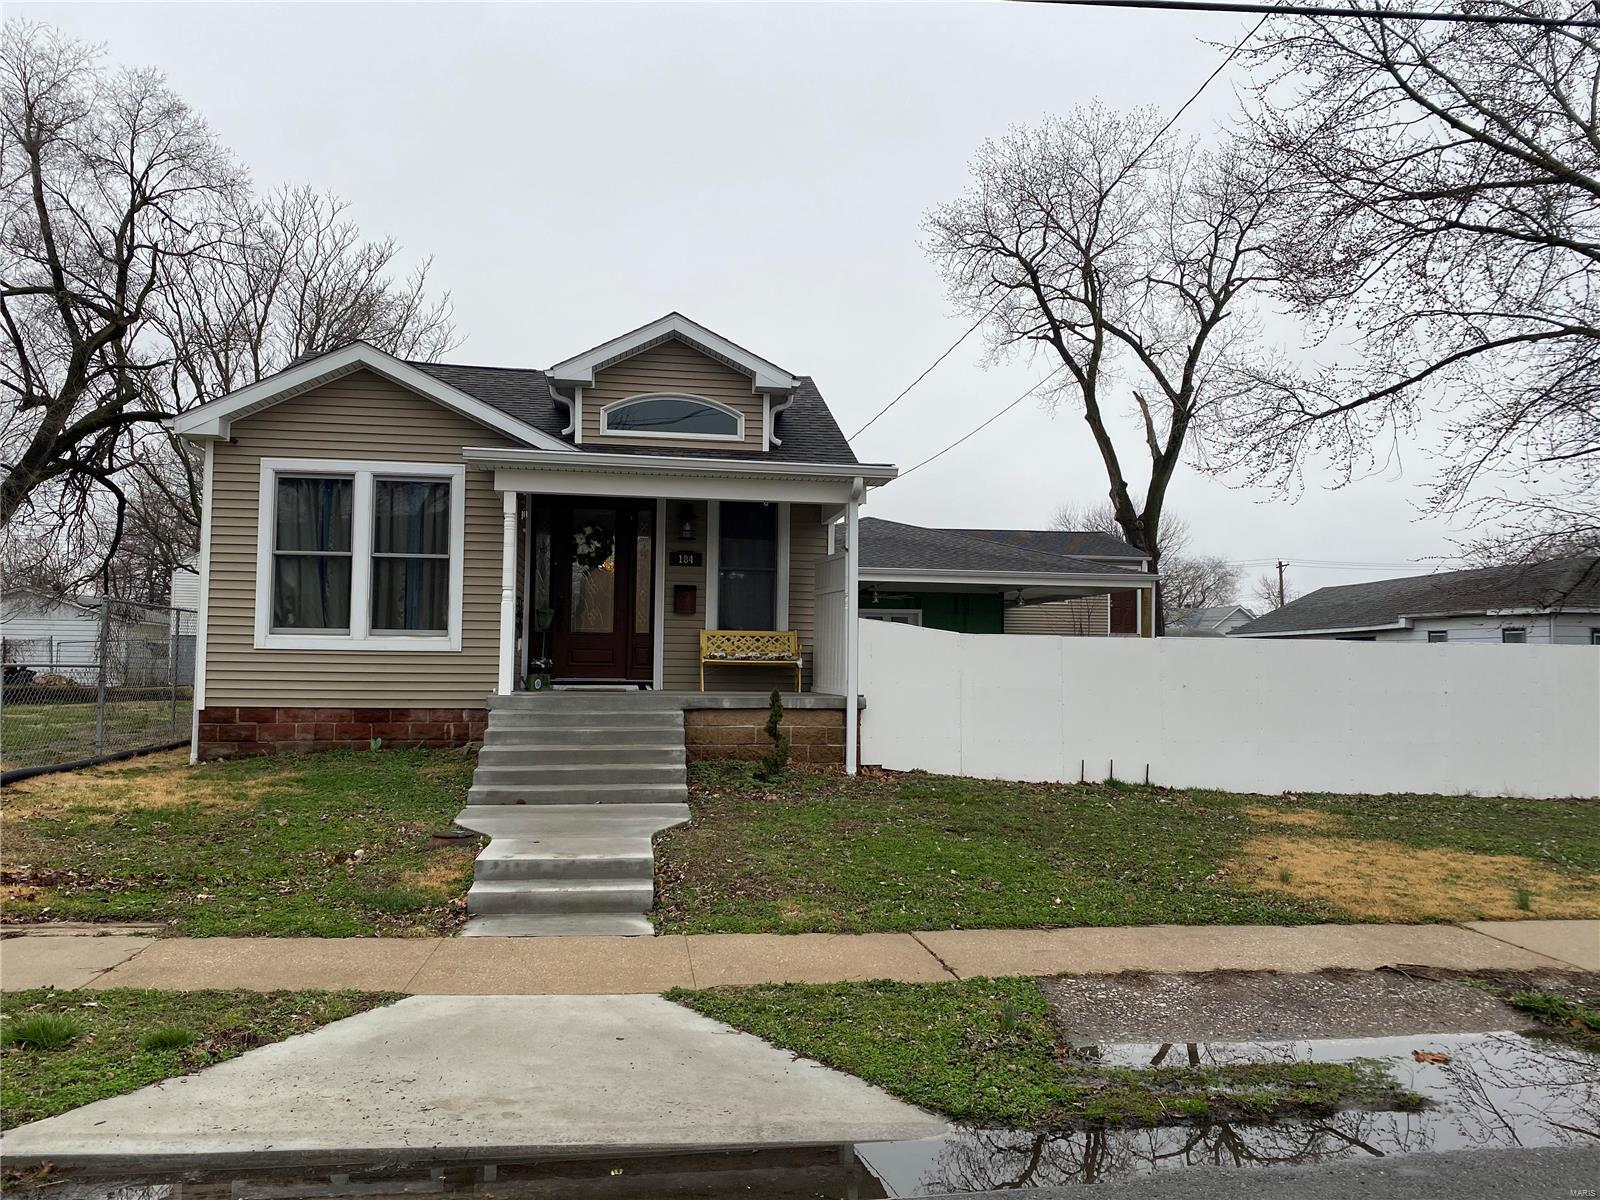 184 S Pence Property Photo - East Alton, IL real estate listing